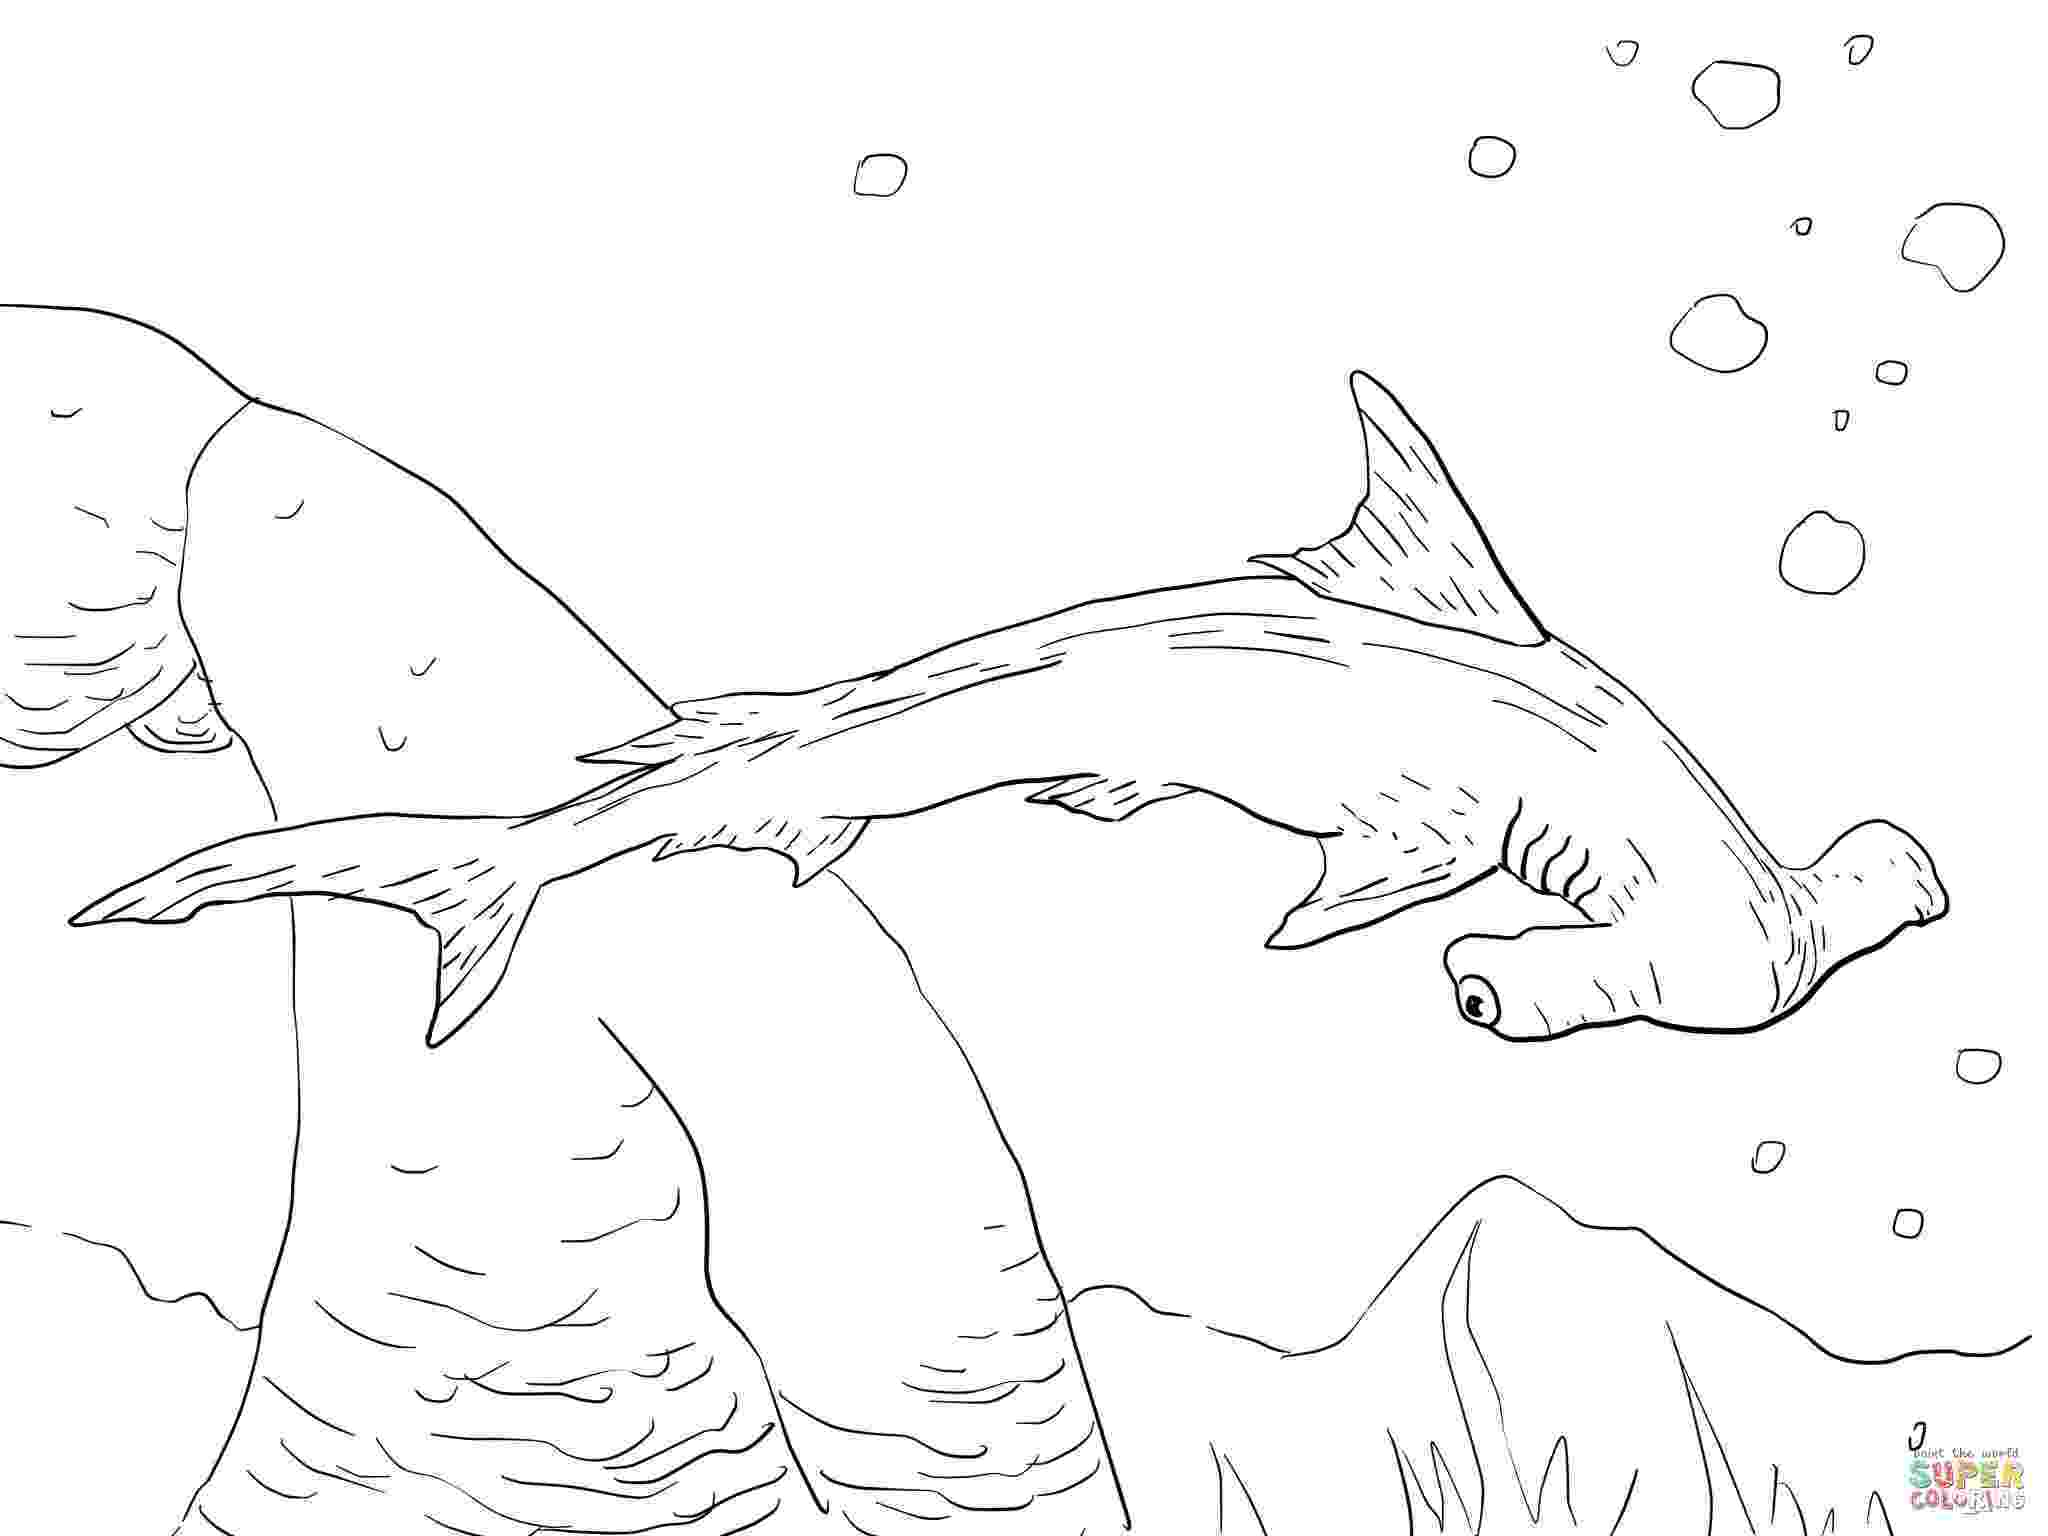 hammerhead shark color hammerhead shark coloring pages to print free coloring color shark hammerhead